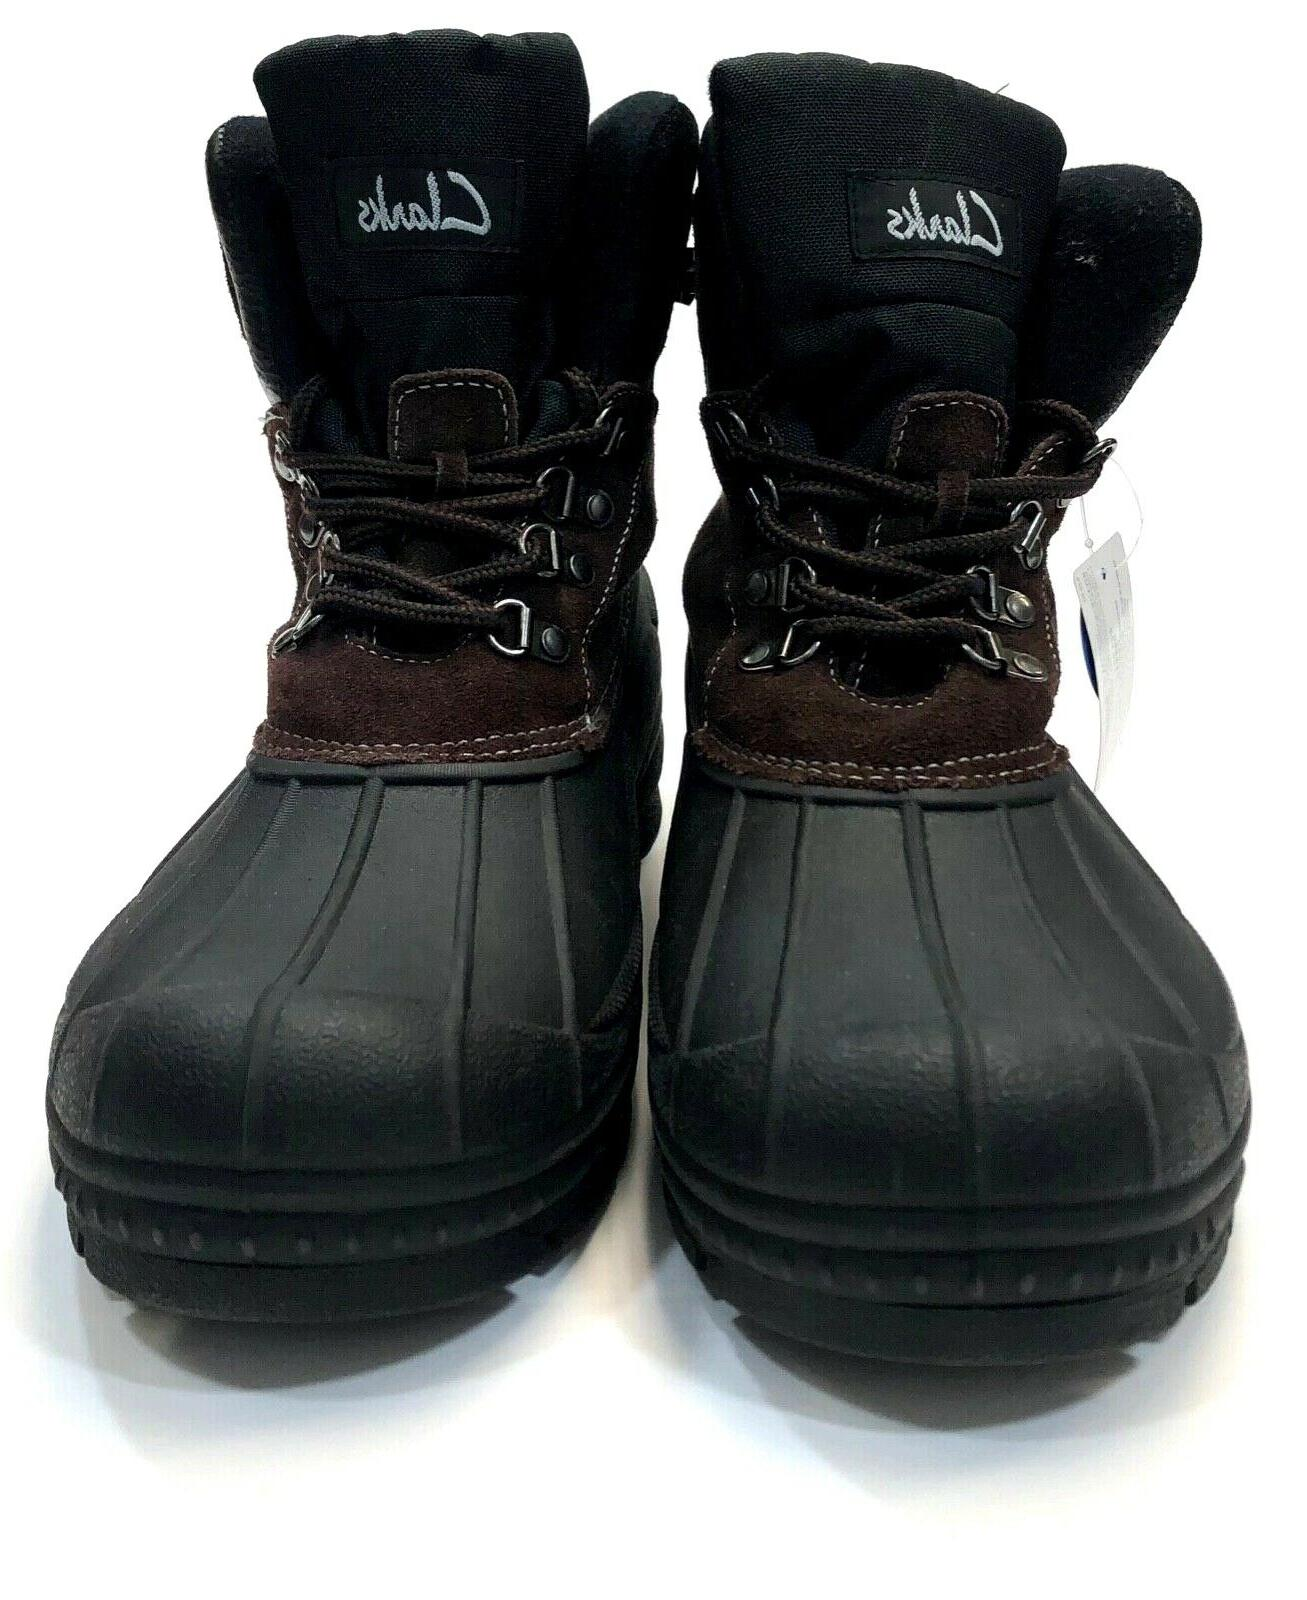 Clarks Insulated Boots